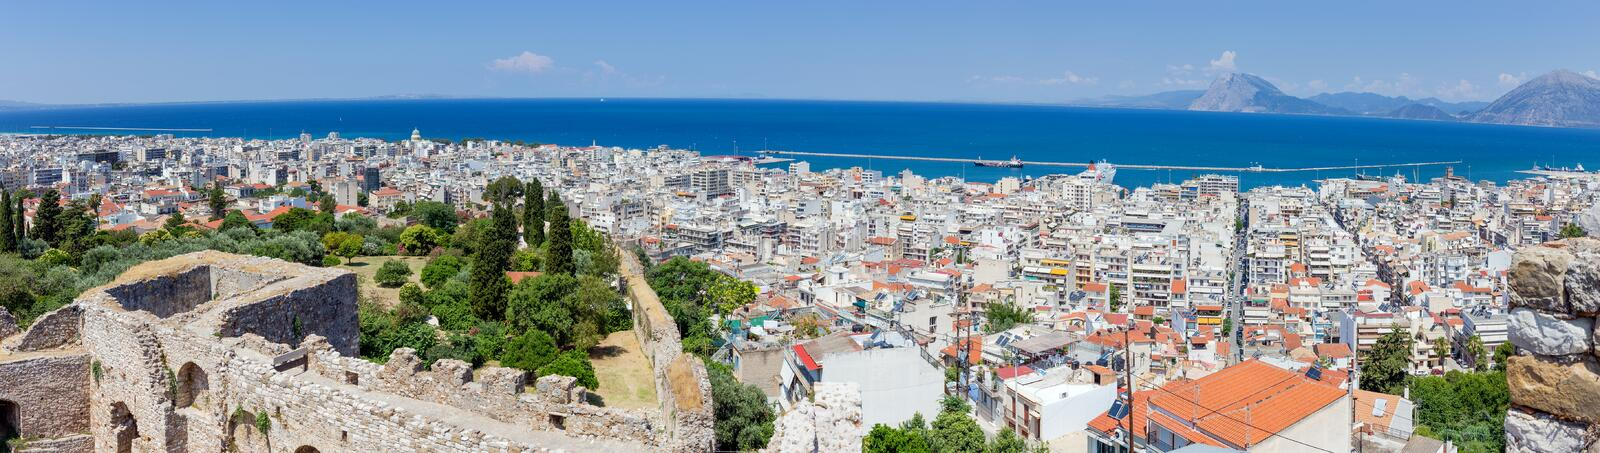 Panoramic view of Patras from the fortress, Greece royalty free stock images